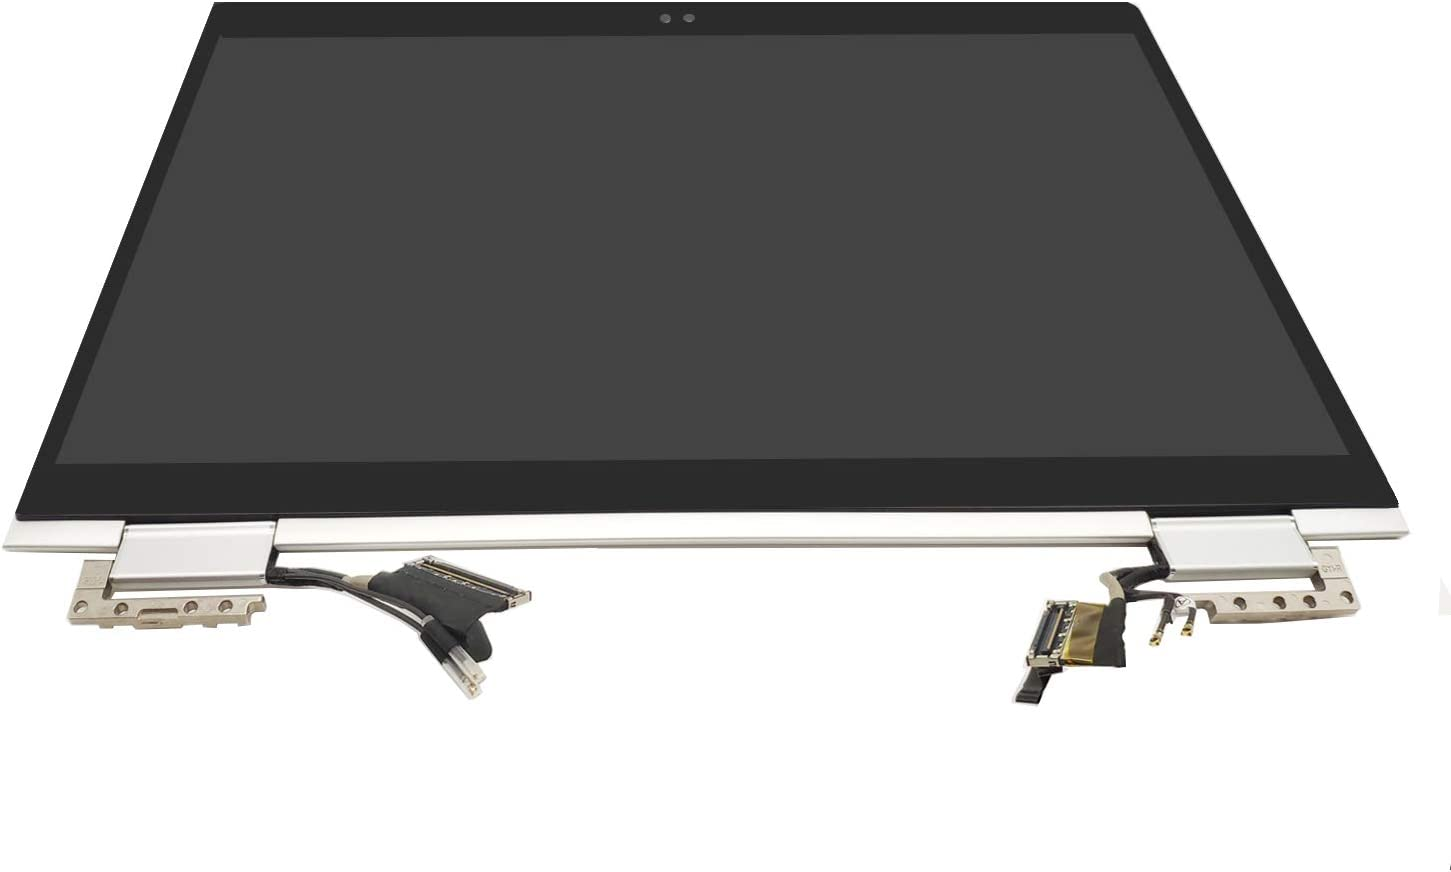 New Replacement for HP Elitebook X360 1030 G3 LCD Screen Complete Assembly Touch 360 L31870-001 FHD 1920x1080 Version